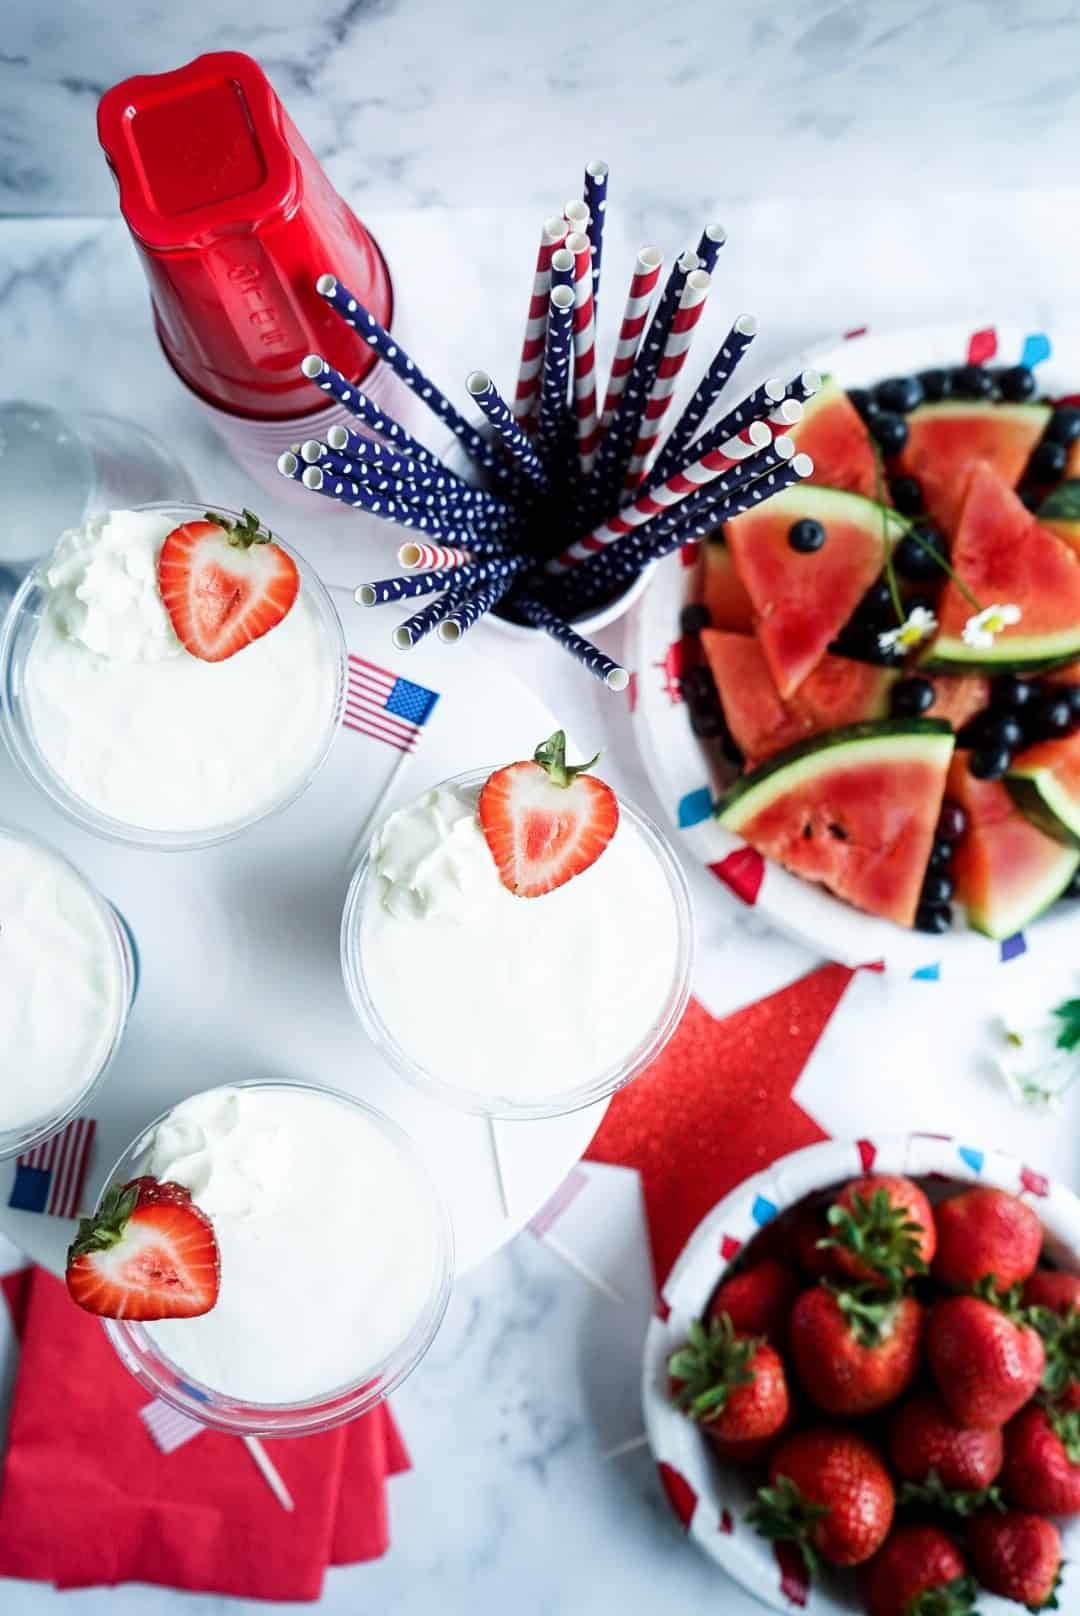 Stars and Stripes Frozen Yogurt Cups with sliced watermelon and strawberries in bowls